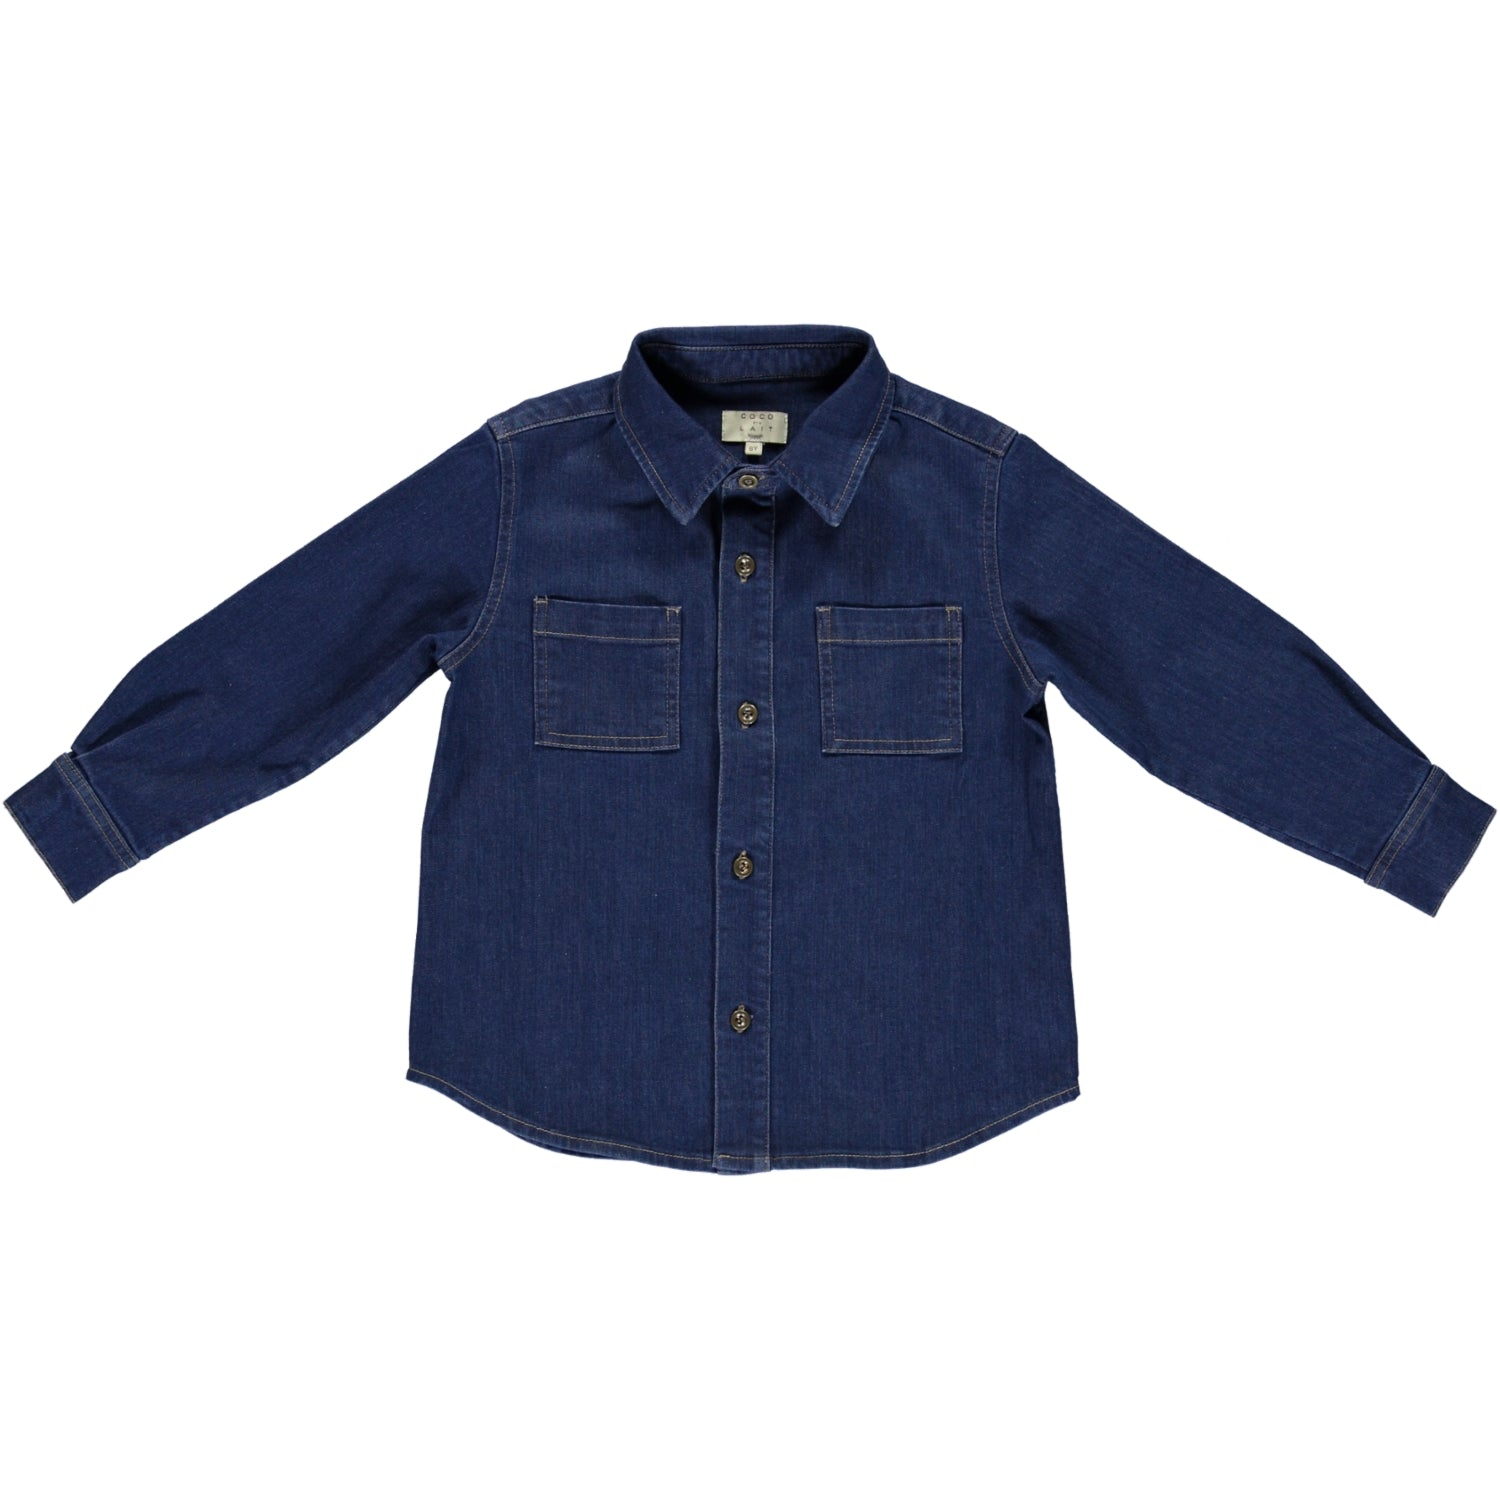 Load image into Gallery viewer, Coco Au Lait DENIM SHIRT Shirt Denim Blue